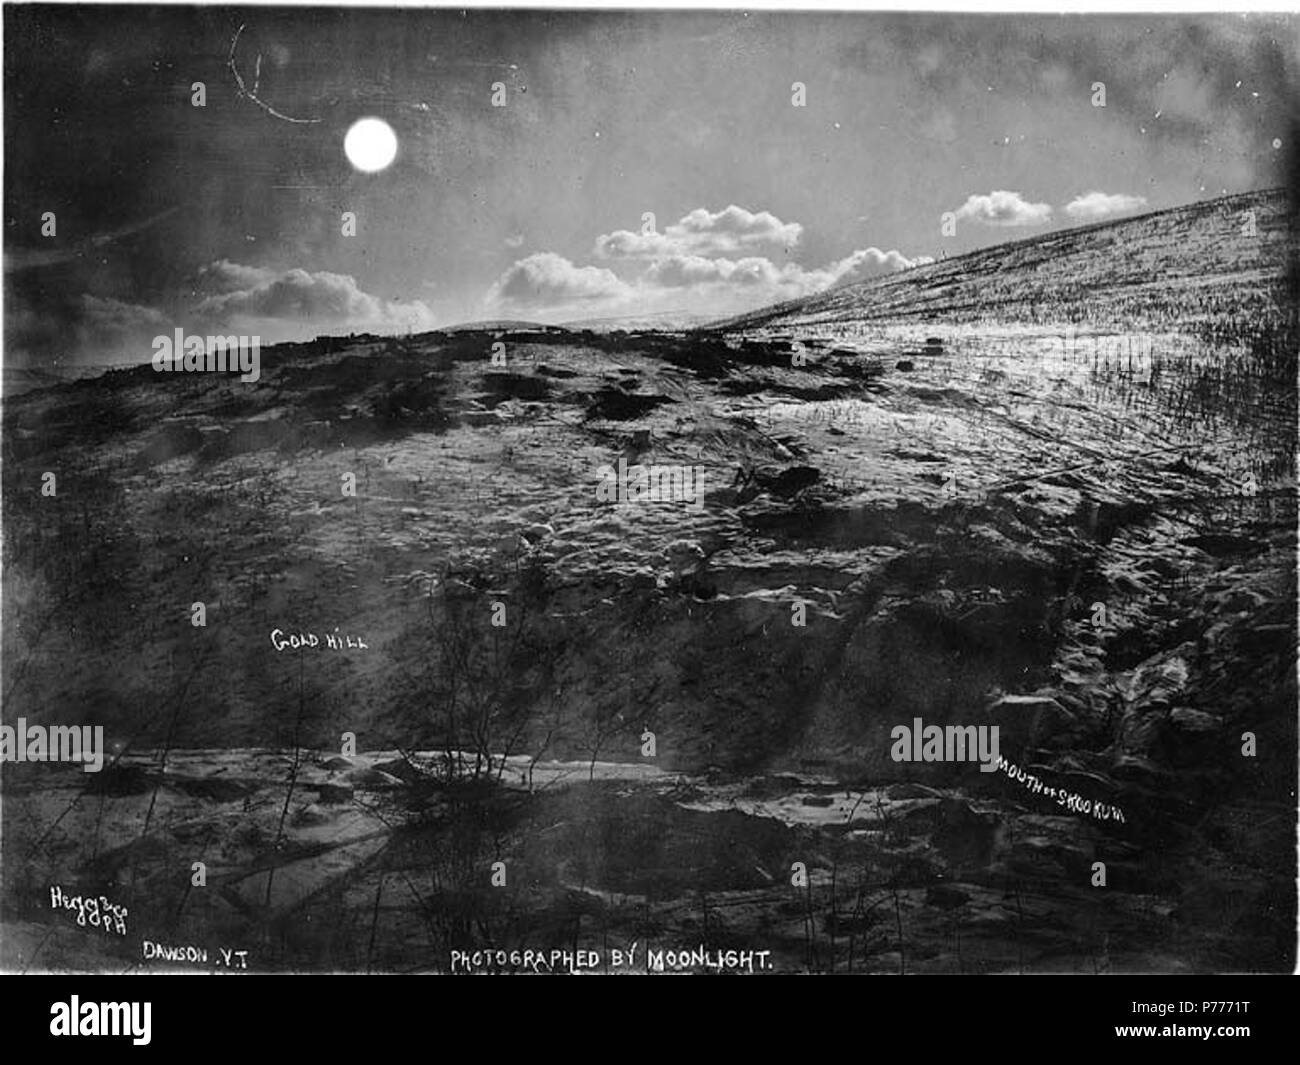 . English: Gold Hill and mouth of Skookum Creek photographed by moonlight, Yukon Territory, ca. 1898. English: Caption on image: 'Gold Hill, Mouth of Skookum photographed by moonlight.' Subjects (LCTGM): Mountains--Yukon; Skookum Creek (Yukon); Streams--Yukon Subjects (LCSH): Gold Hill (Yukon)  . circa 1898 5 Gold Hill and mouth of Skookum Creek photographed by moonlight, Yukon Territory, ca 1898 (HEGG 354) - Stock Image